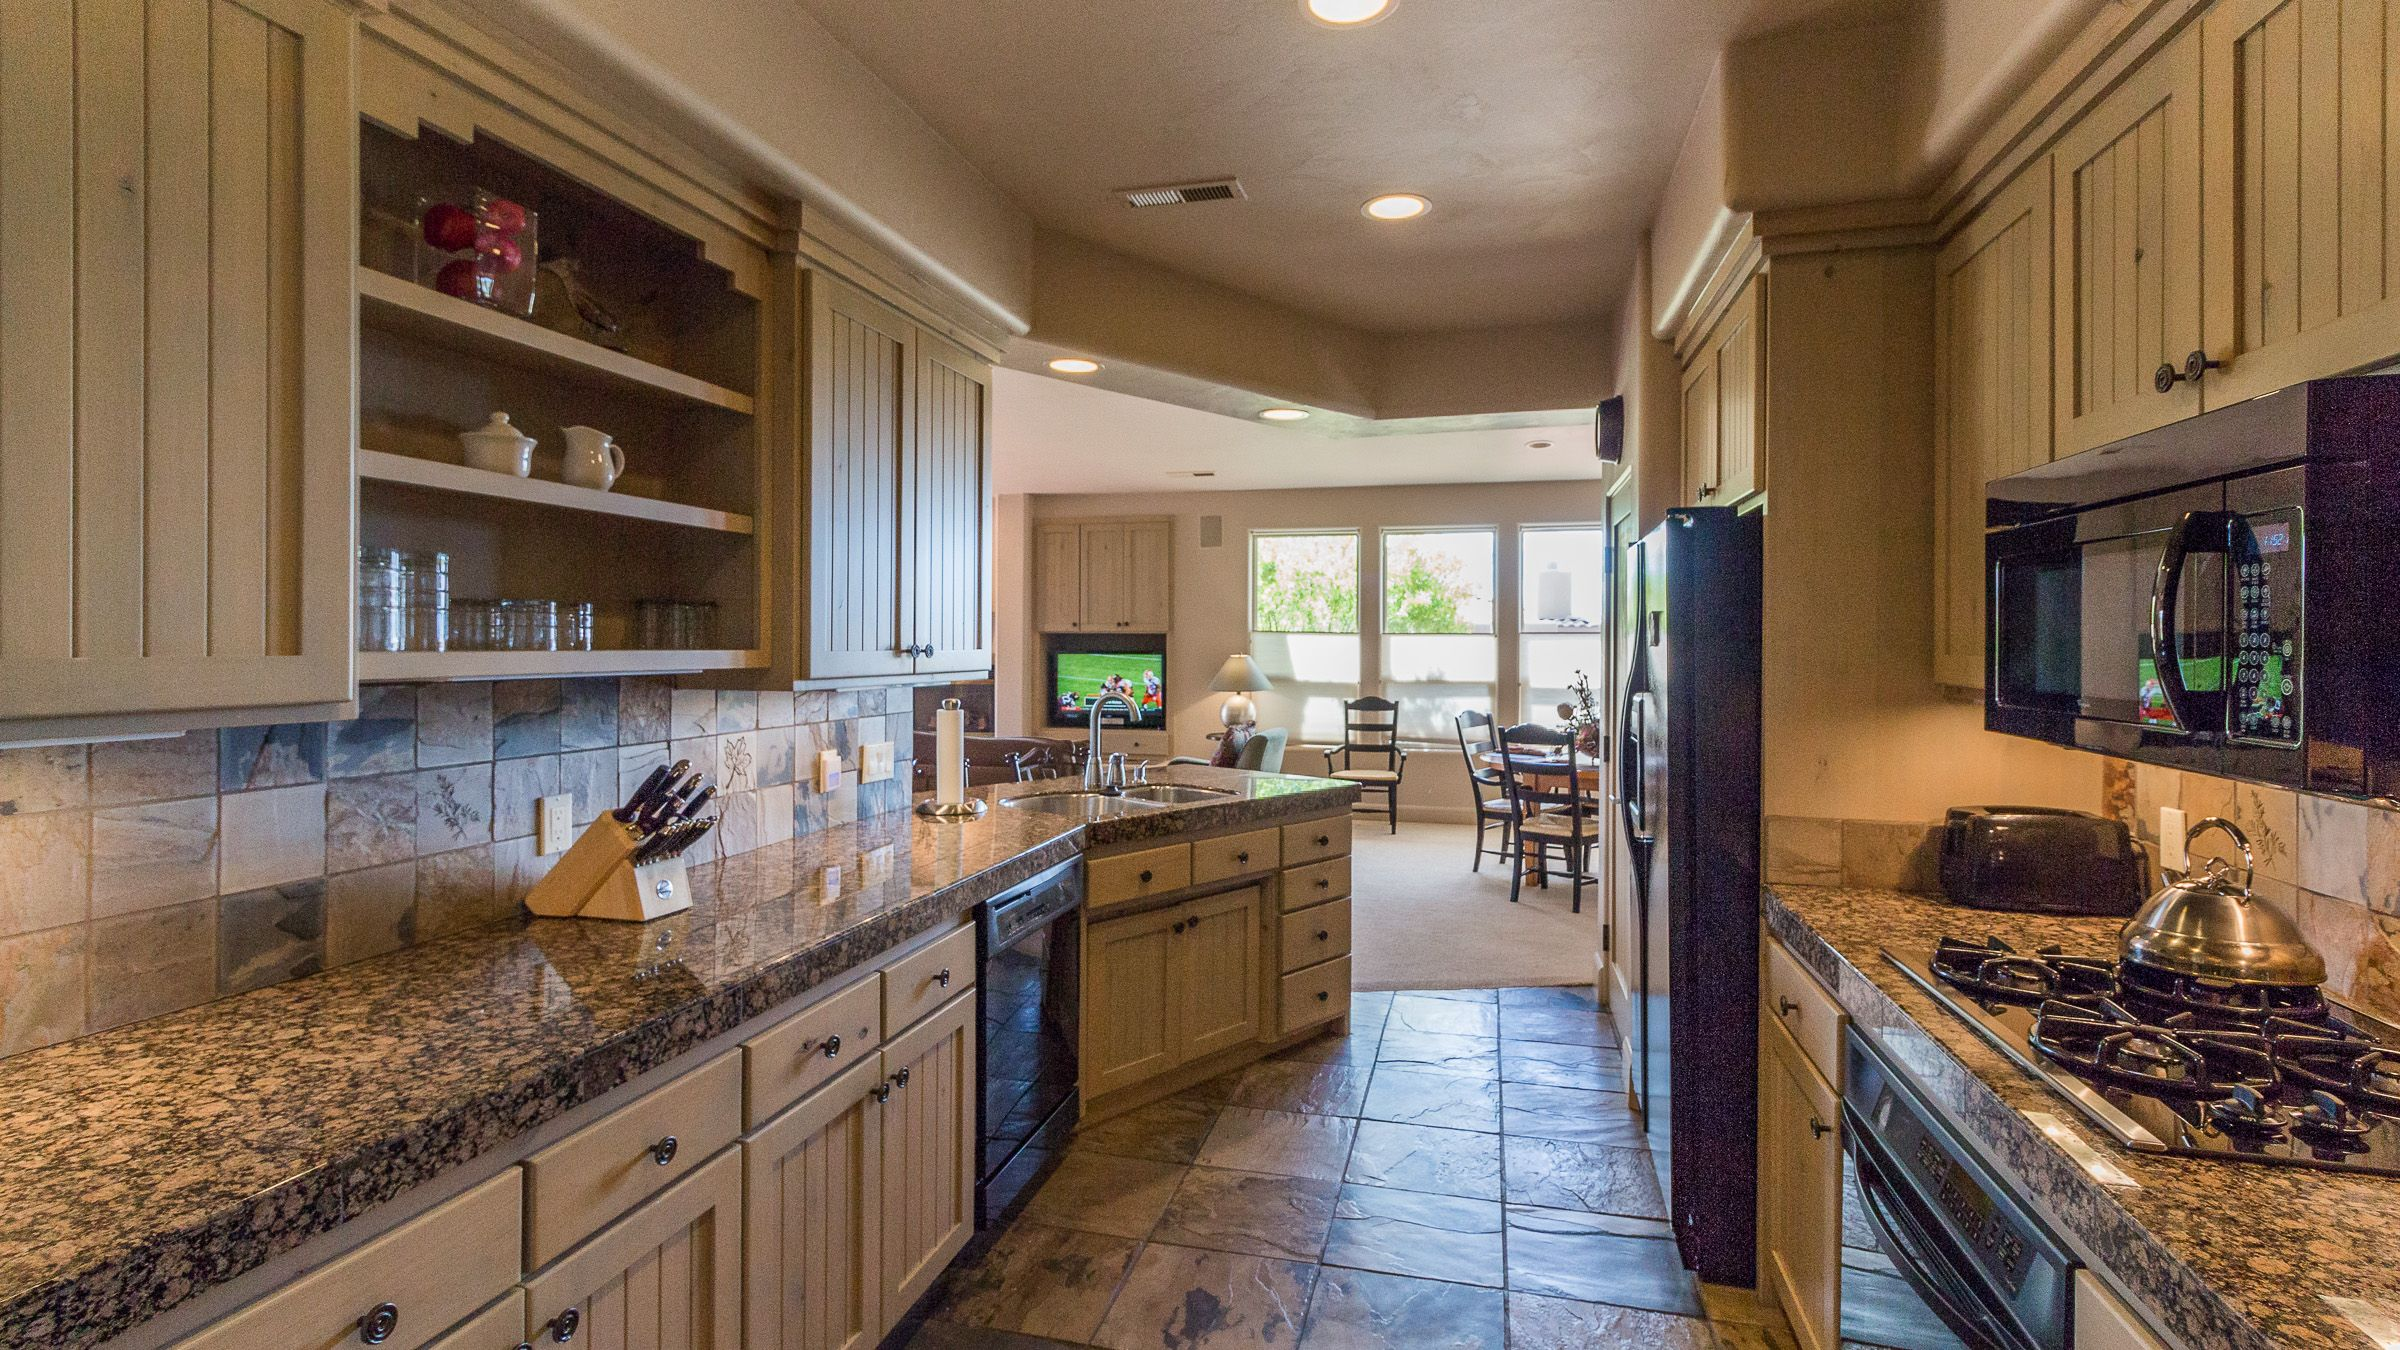 Dog friendly immaculate 2br2ba vacation home in beautiful